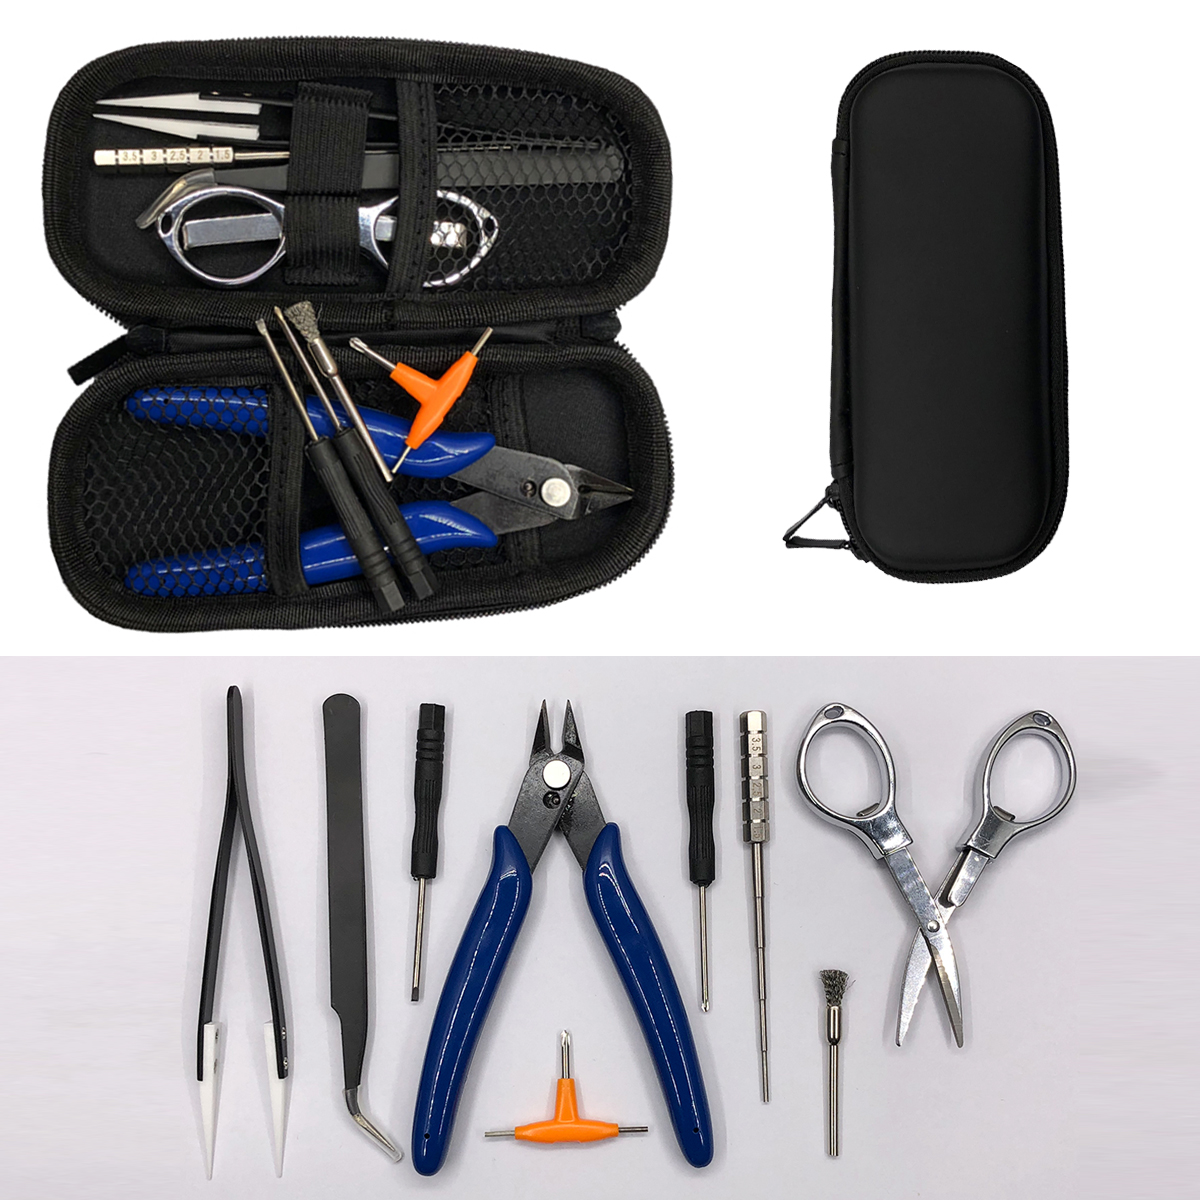 HHO NEW Mini Vape DIY Tool Bag Tweezers Pliers Kit Coil Jig Winding For Packing Electronic Cigarette Accessories for Ego elect|Hand Tool Sets| |  - title=